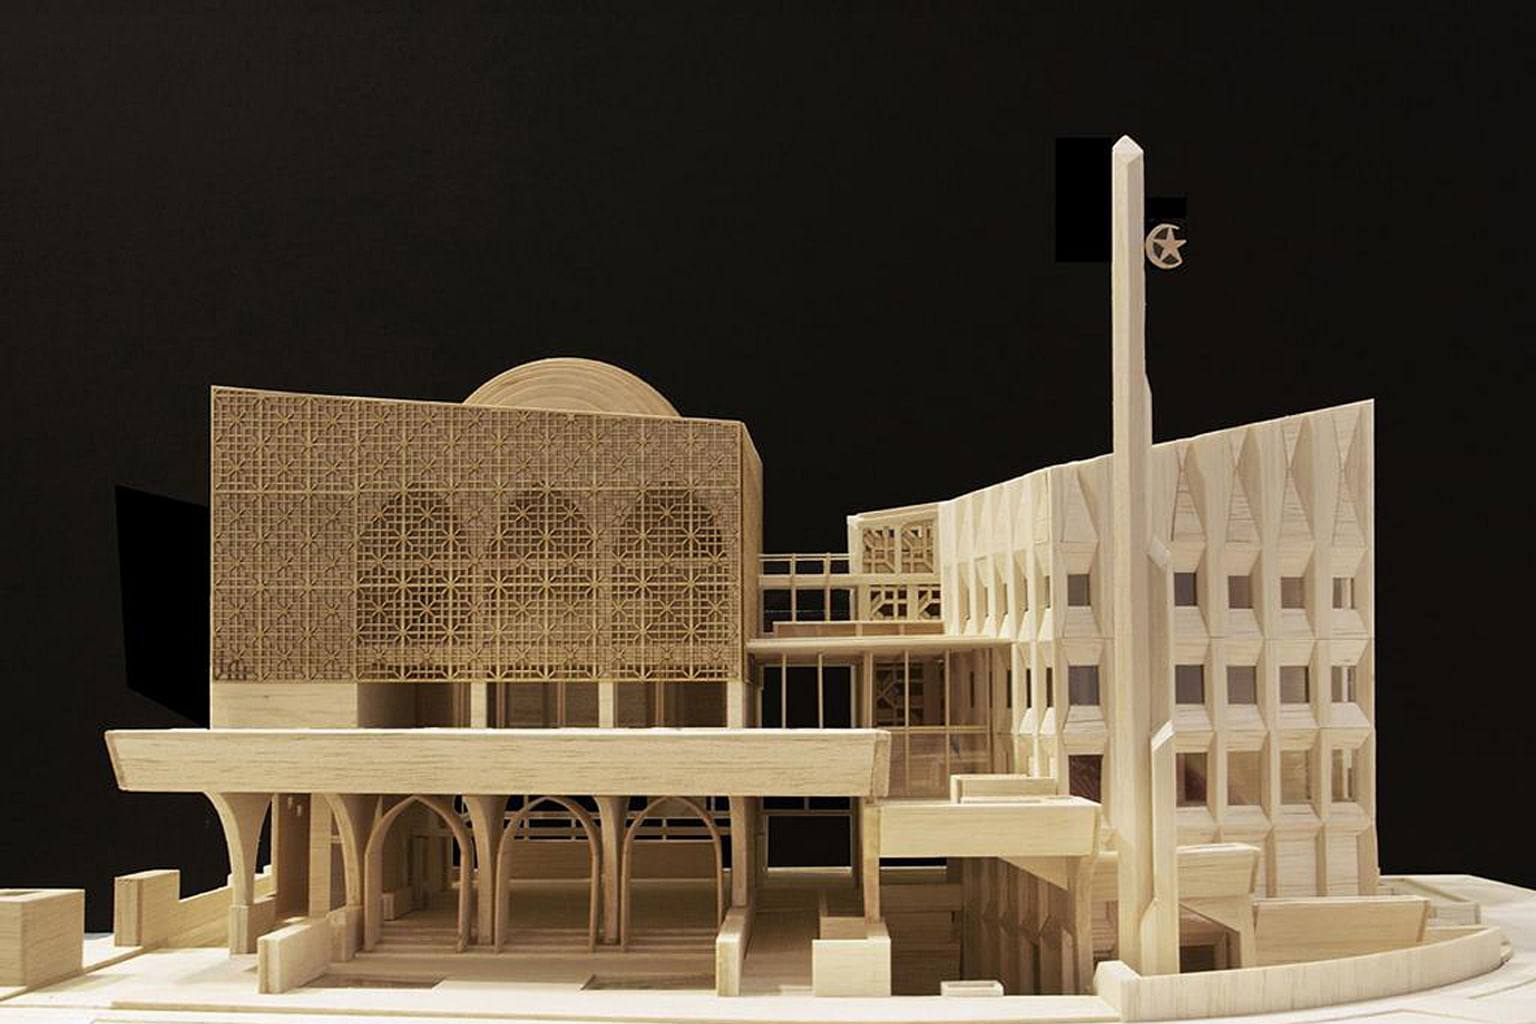 A large display model of Al-Islah Mosque in Punggol, designed by Formwerkz Architects, is on show at the Making Architecture exhibition.